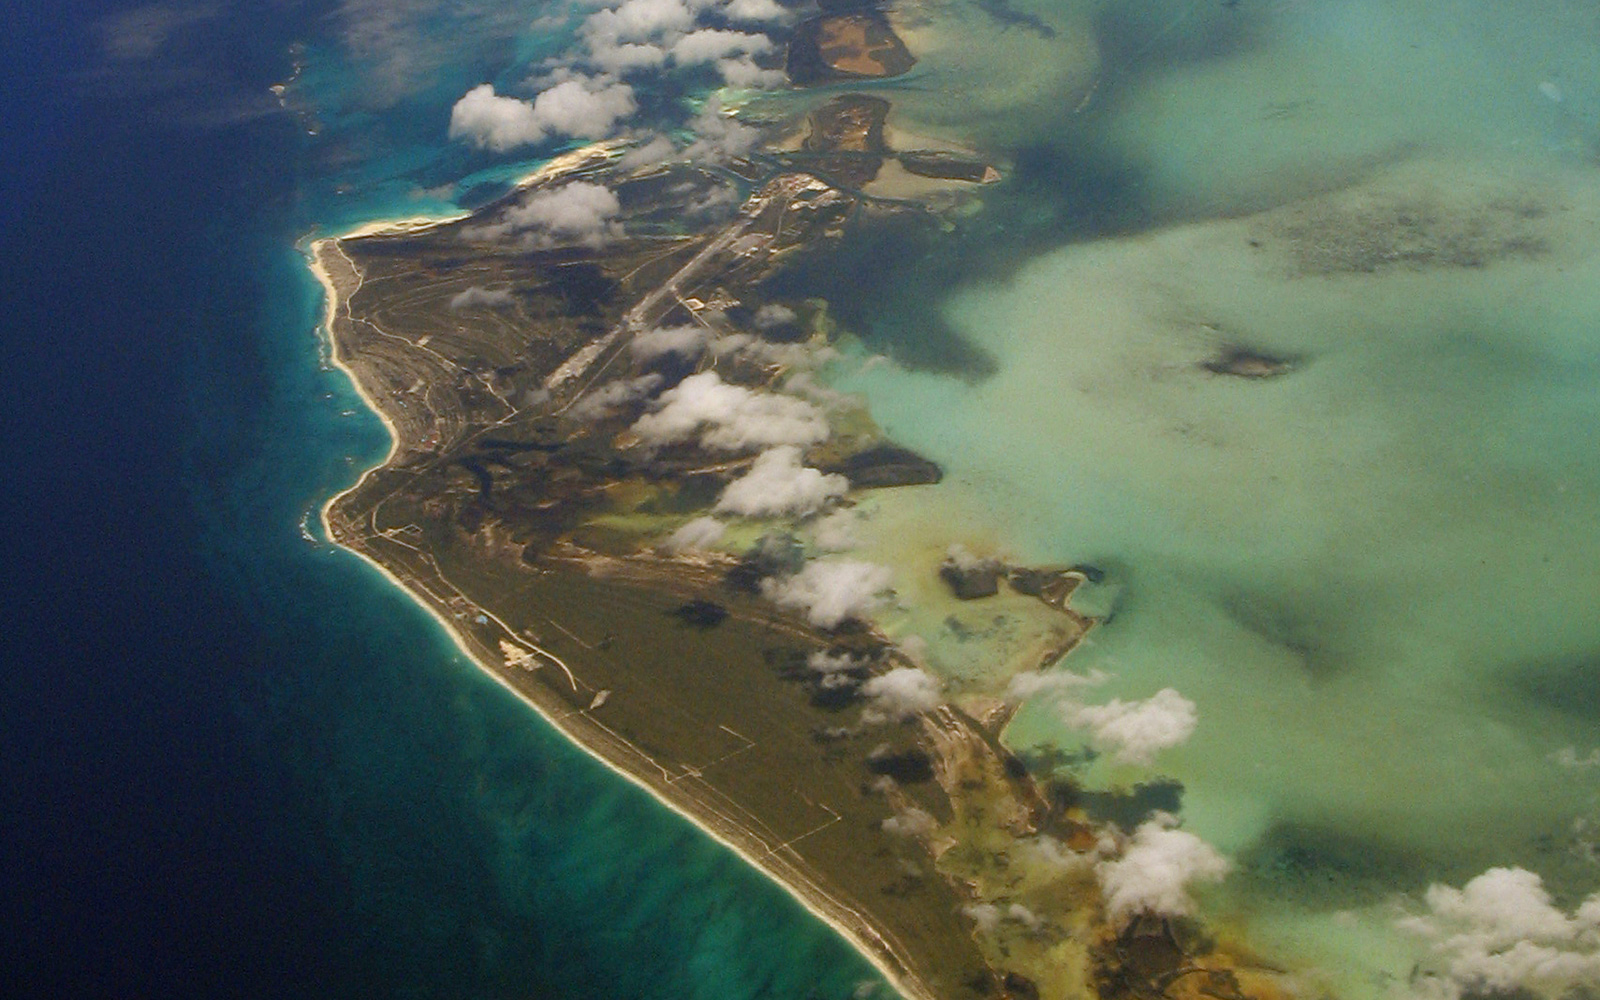 Aerial view of a Gulf Coast barrier island surrounded by blue-green ocean water